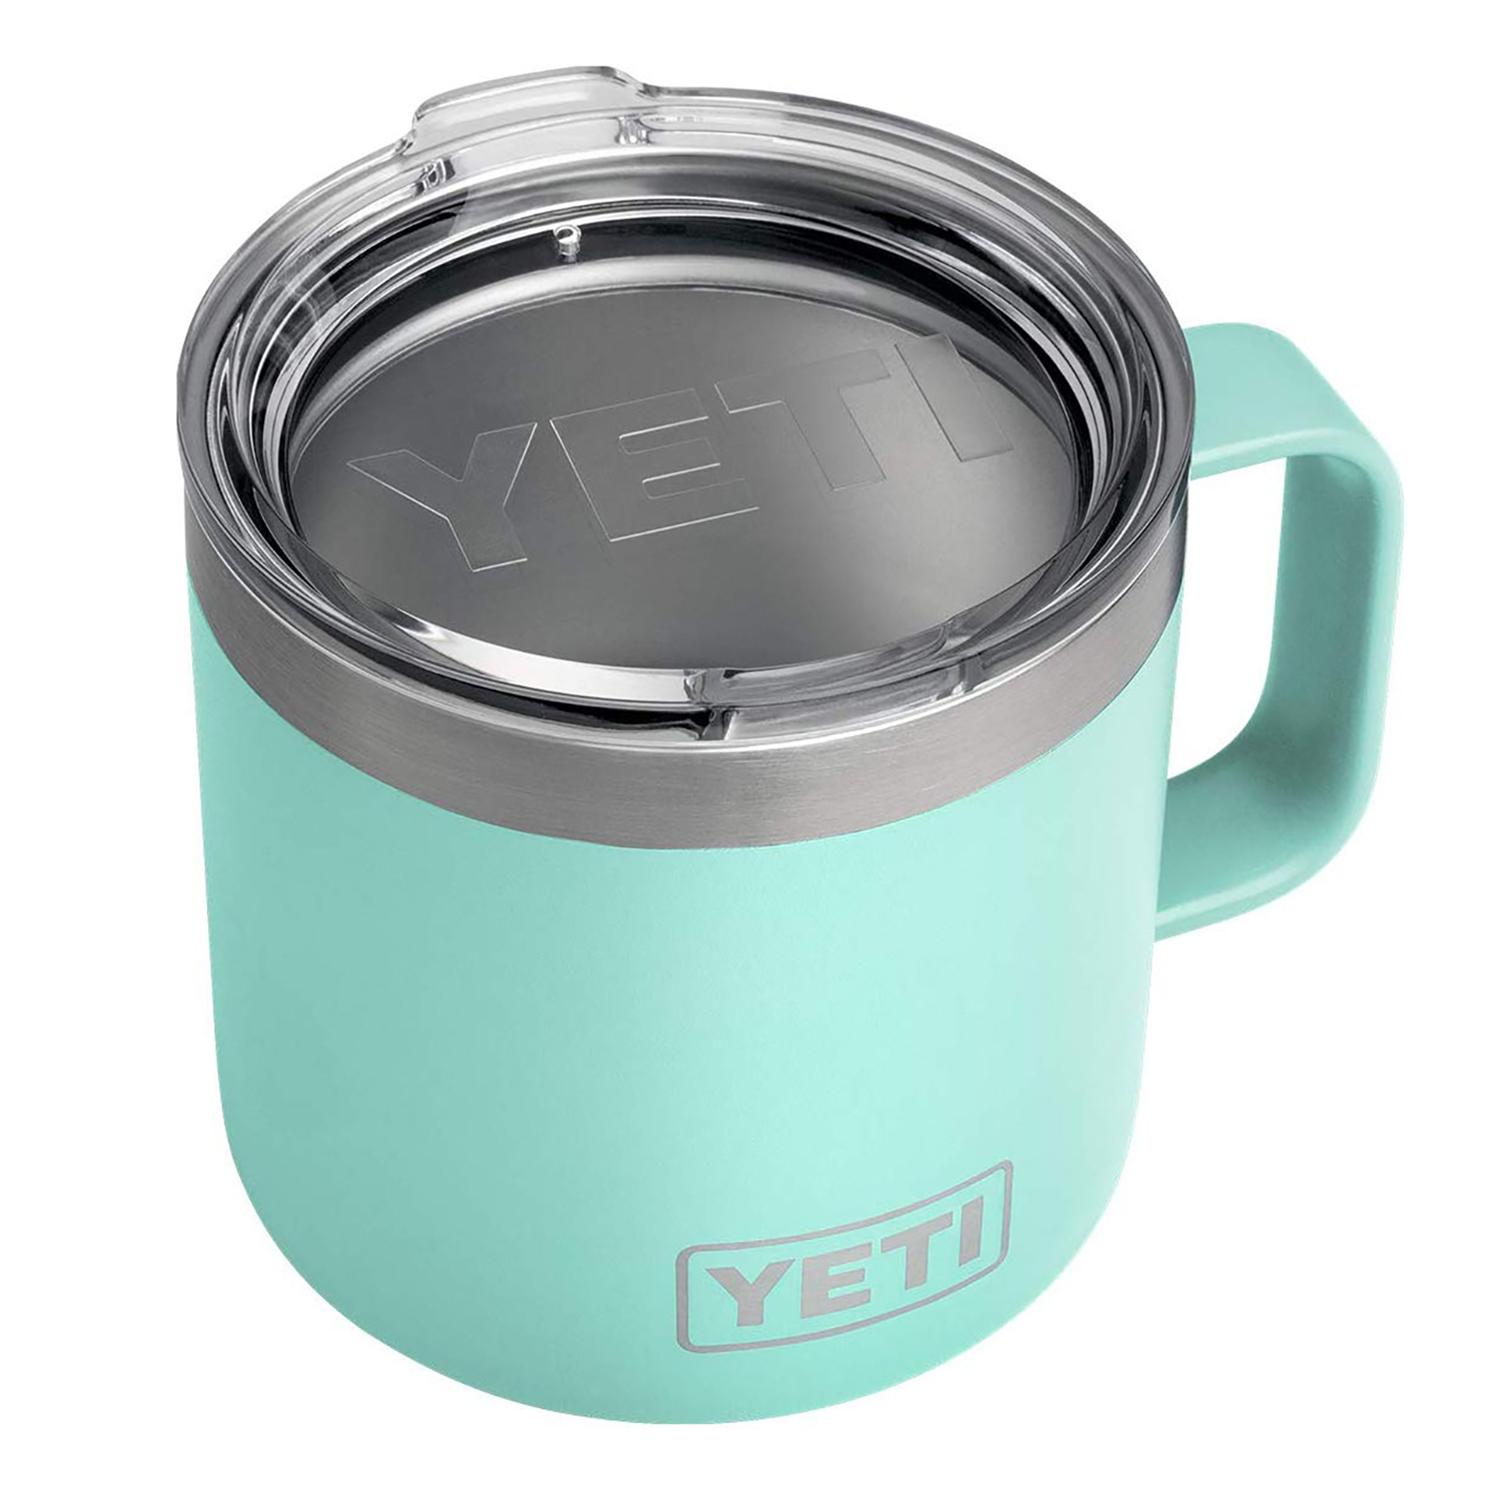 Gifts for Foodies: Yeti Rambler